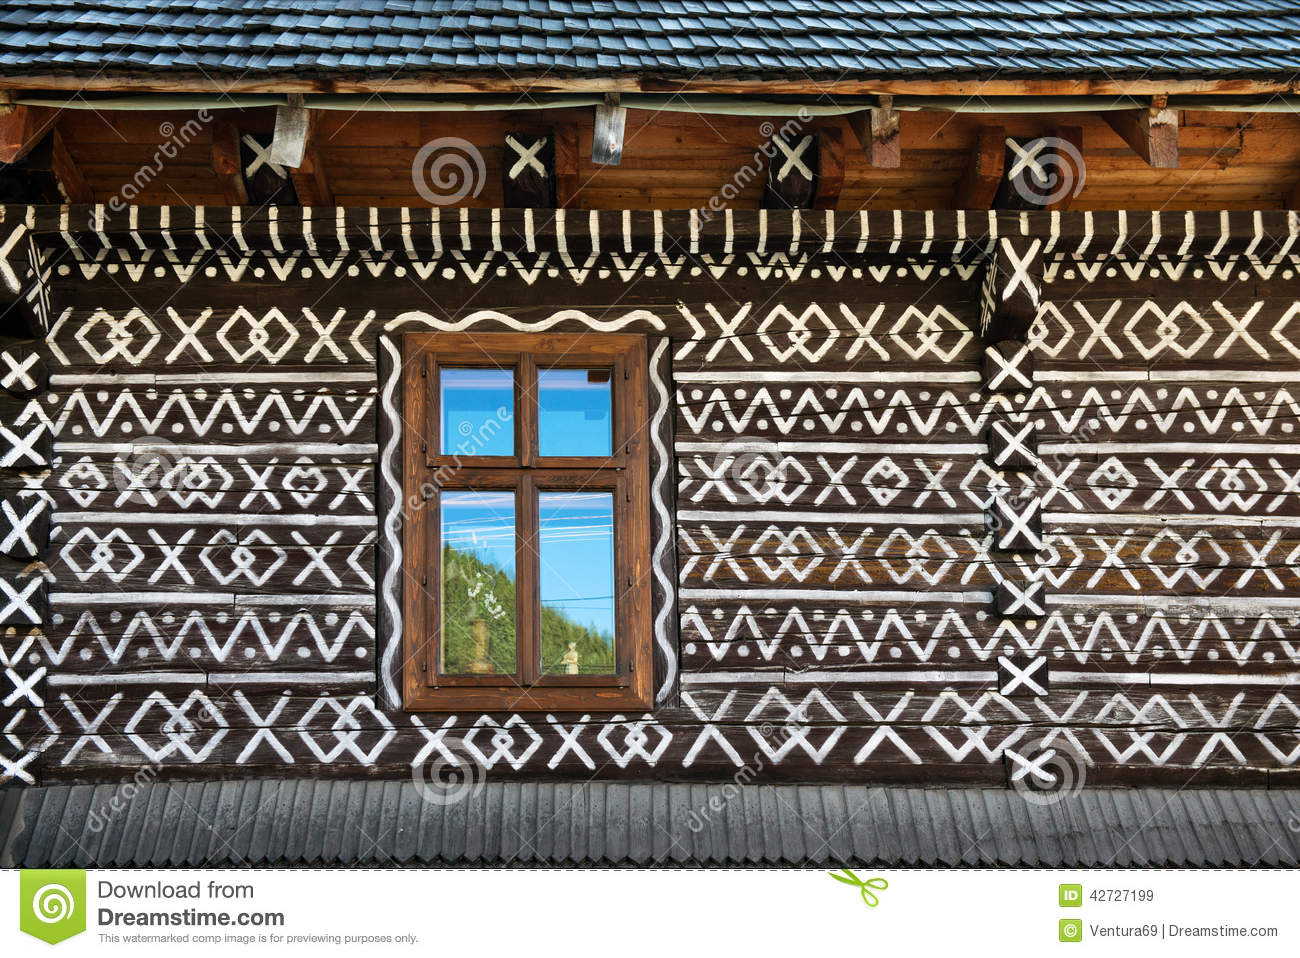 Painted Decorations On Wall Of Log House In Cicmany Slovakia